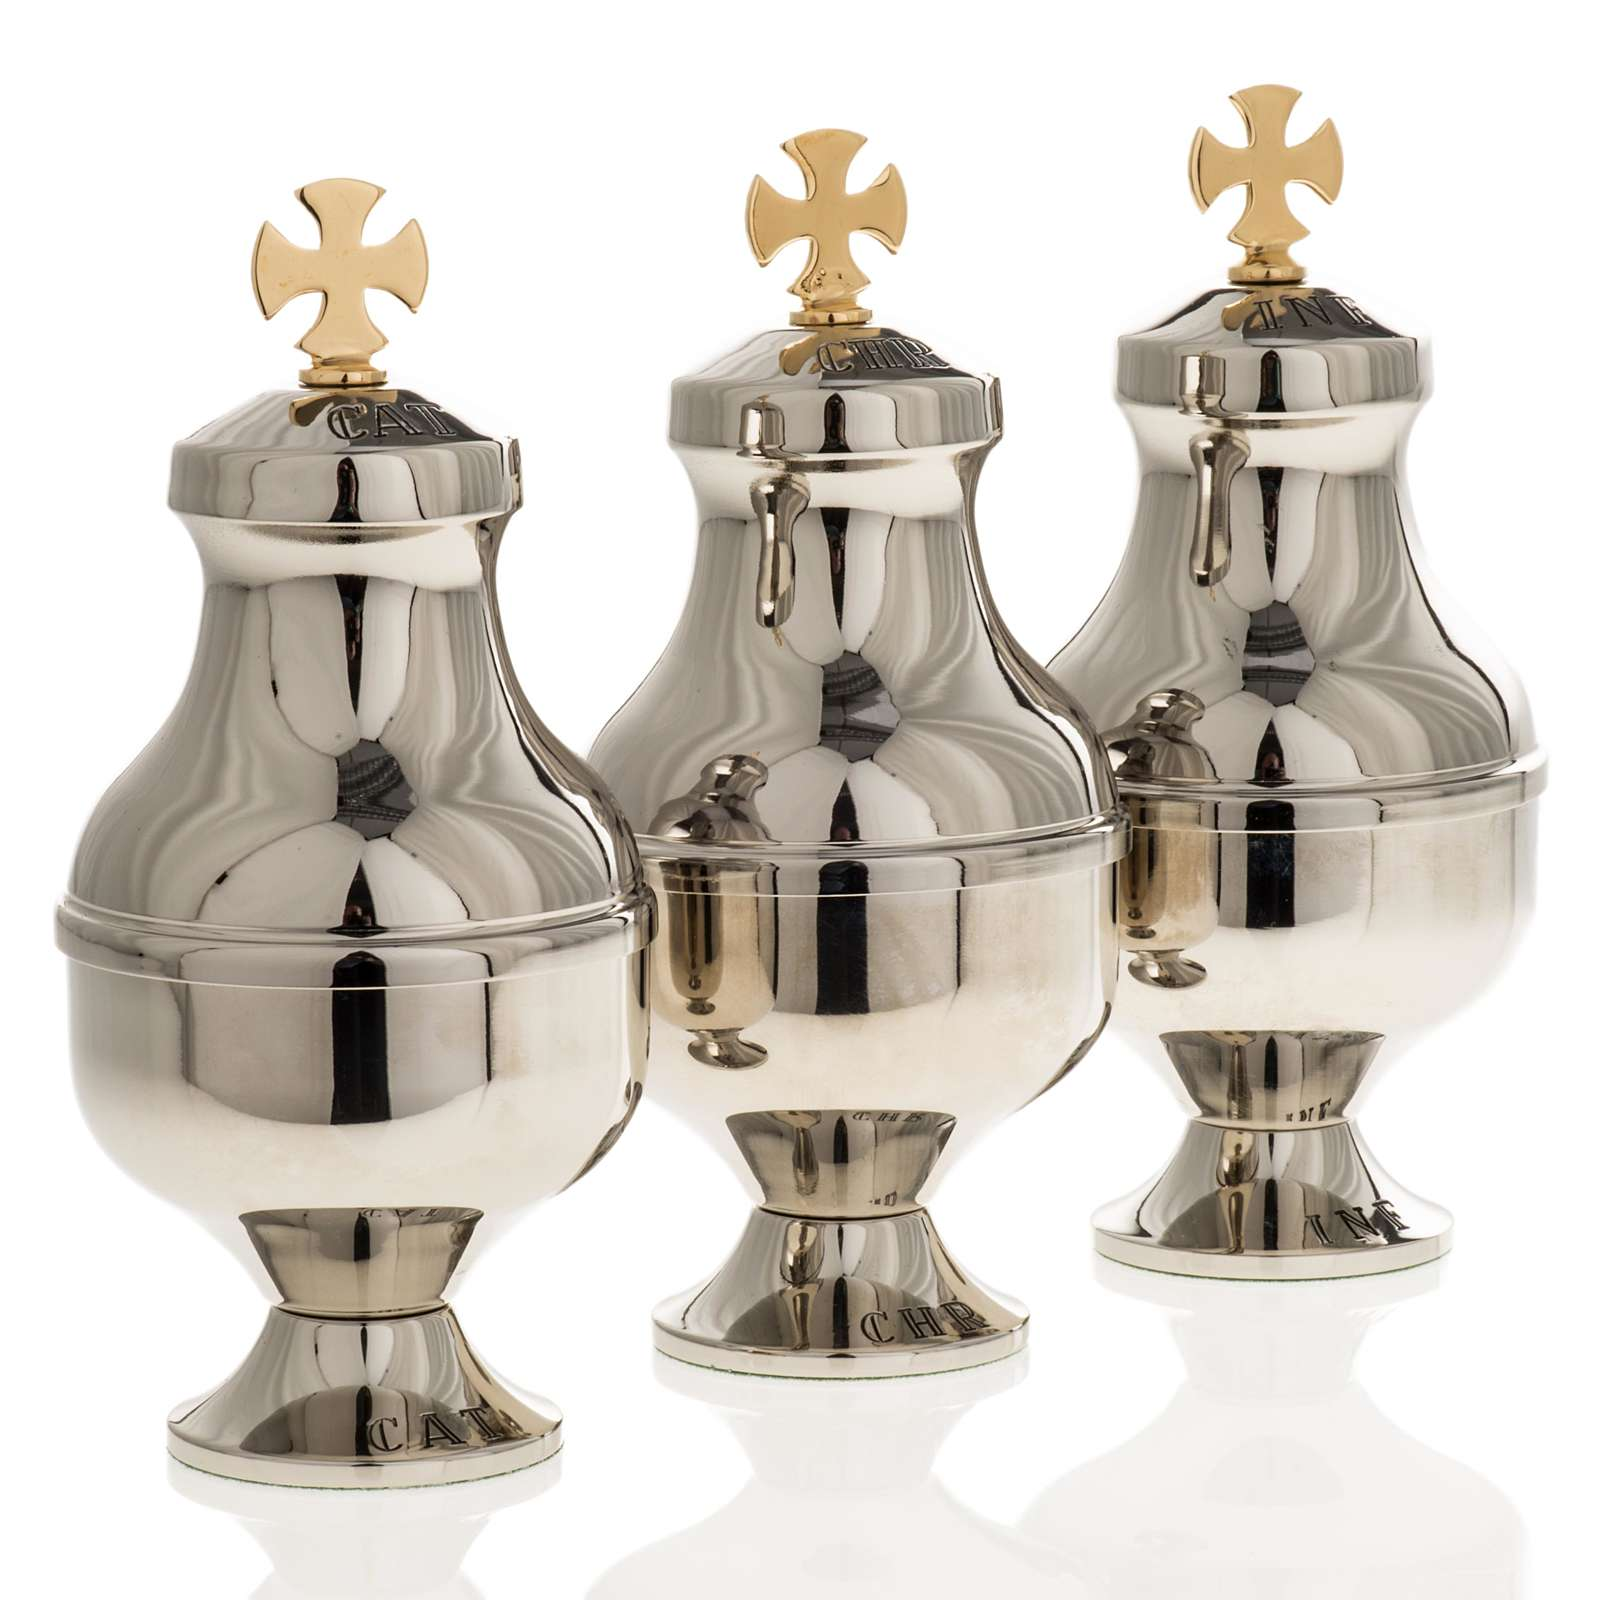 Holy Oils Vessels, nickel-plated 3